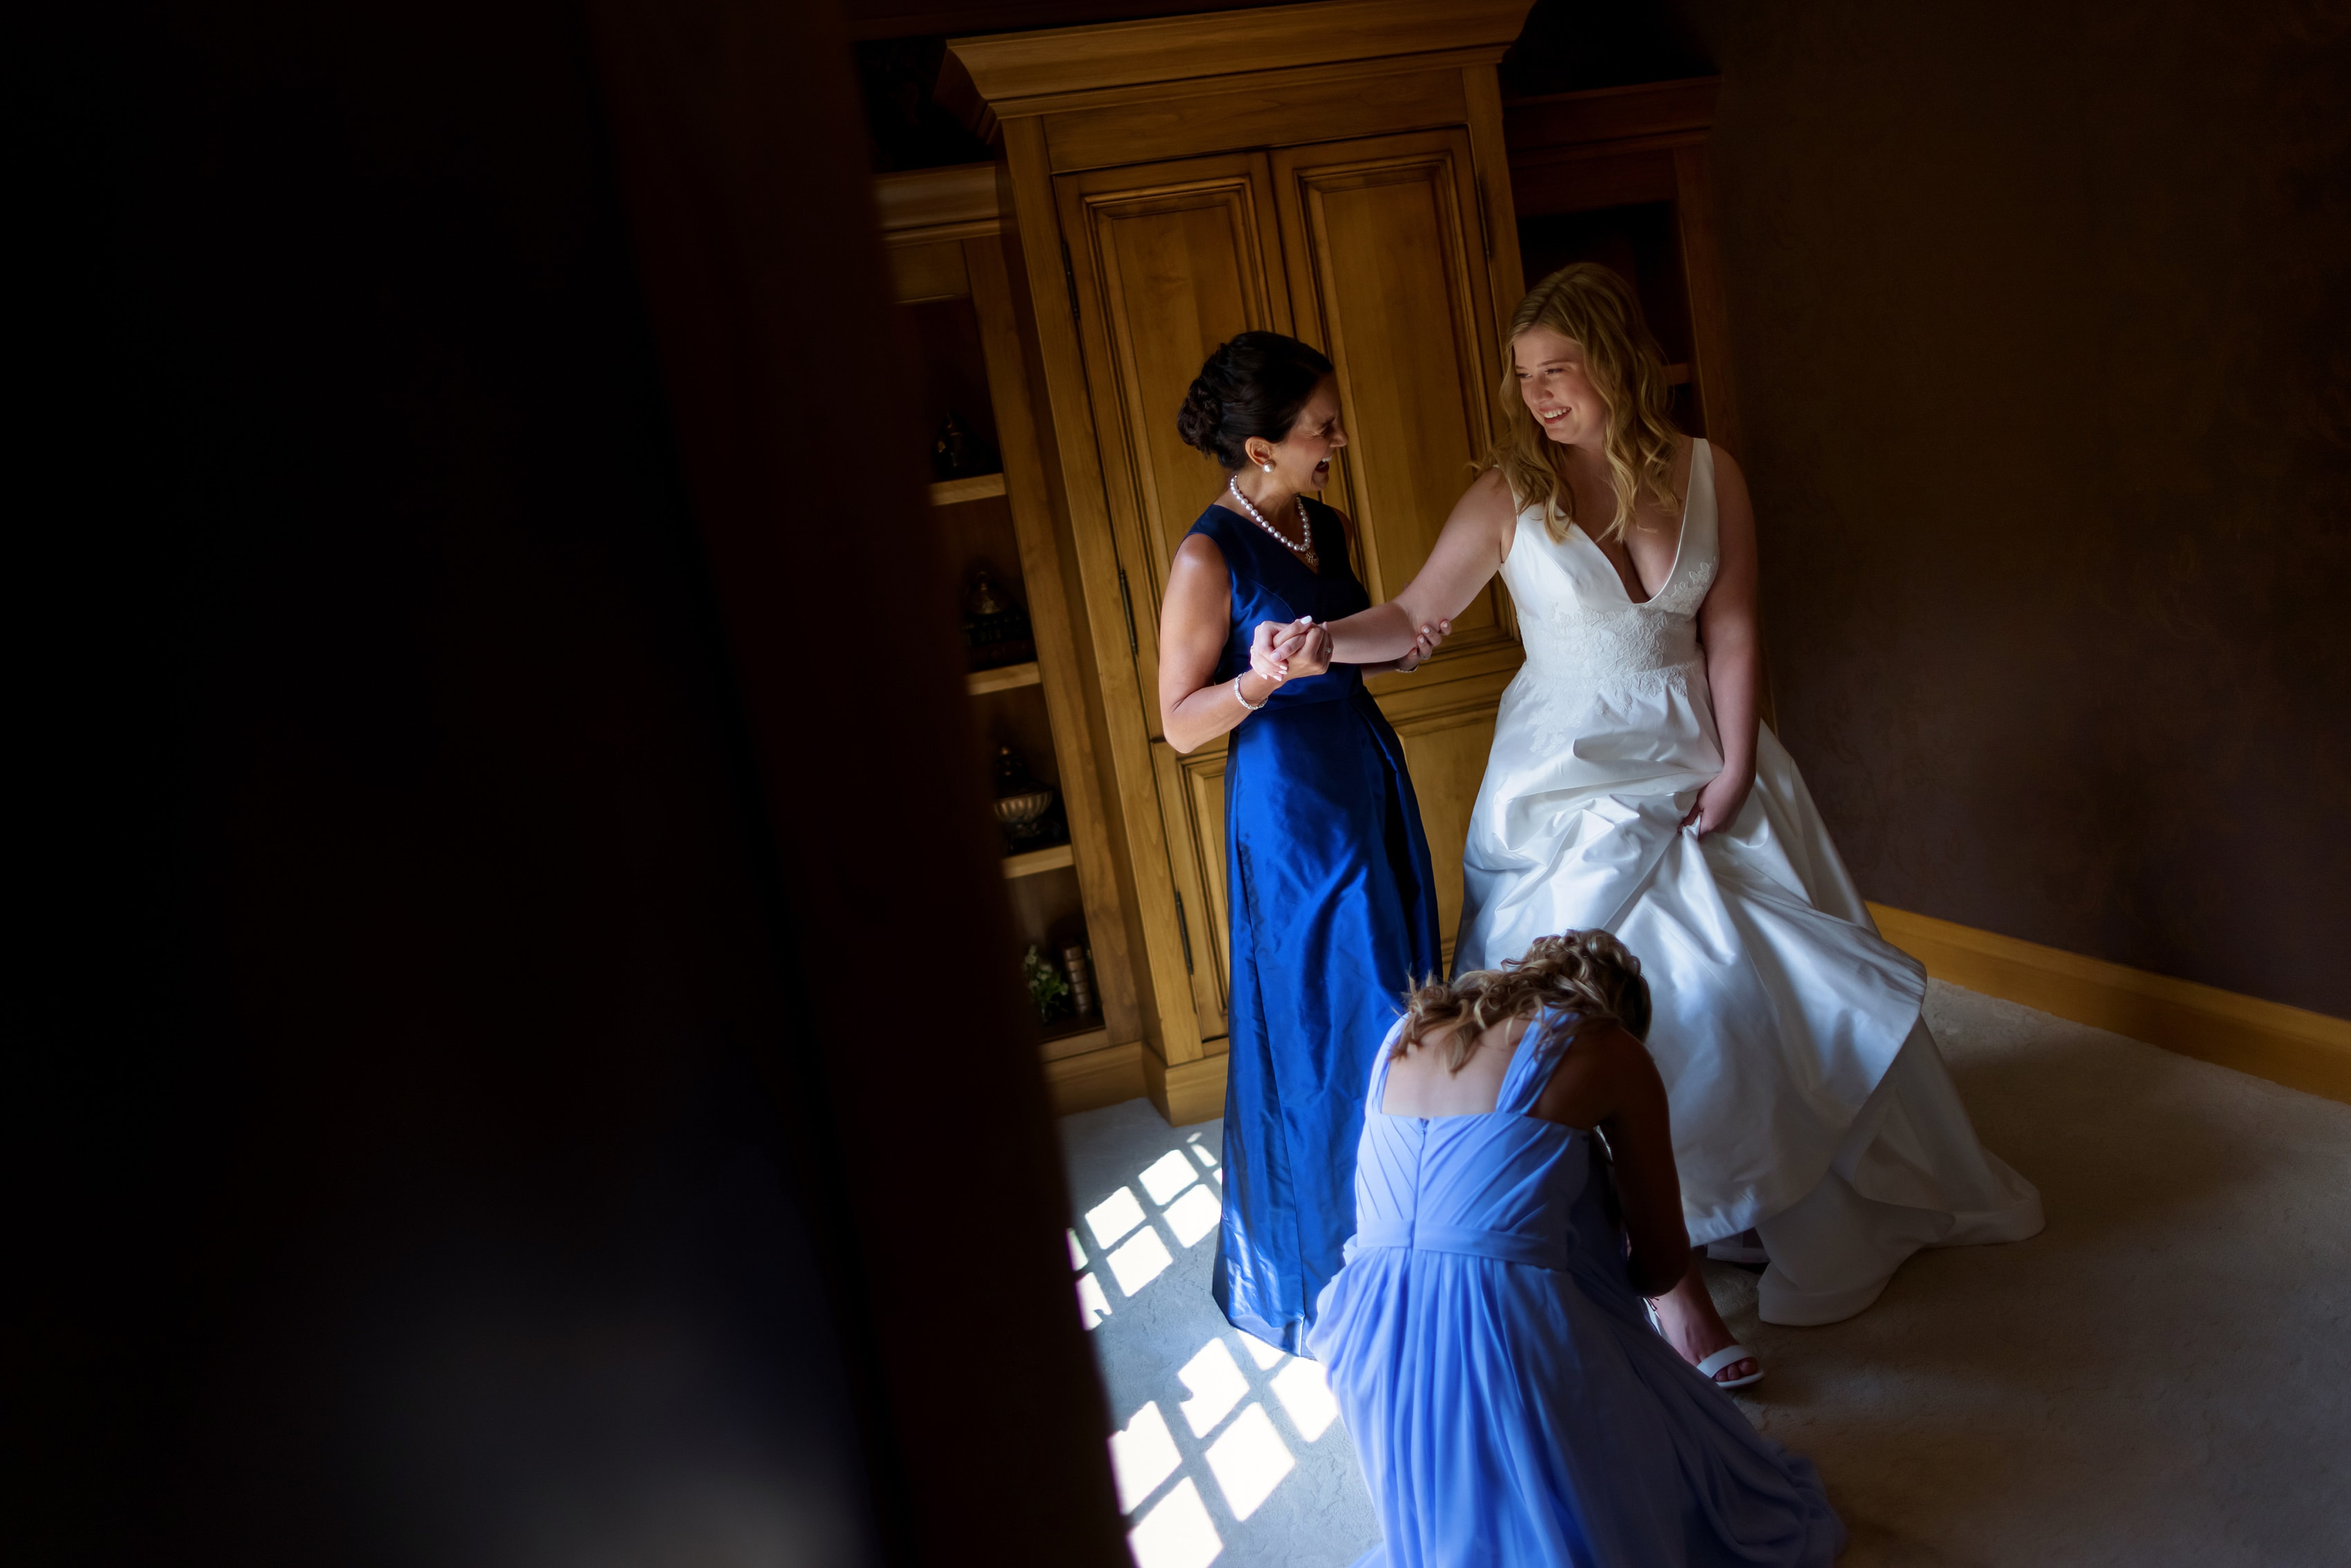 mother of bride and sister help bride into dress while getting ready